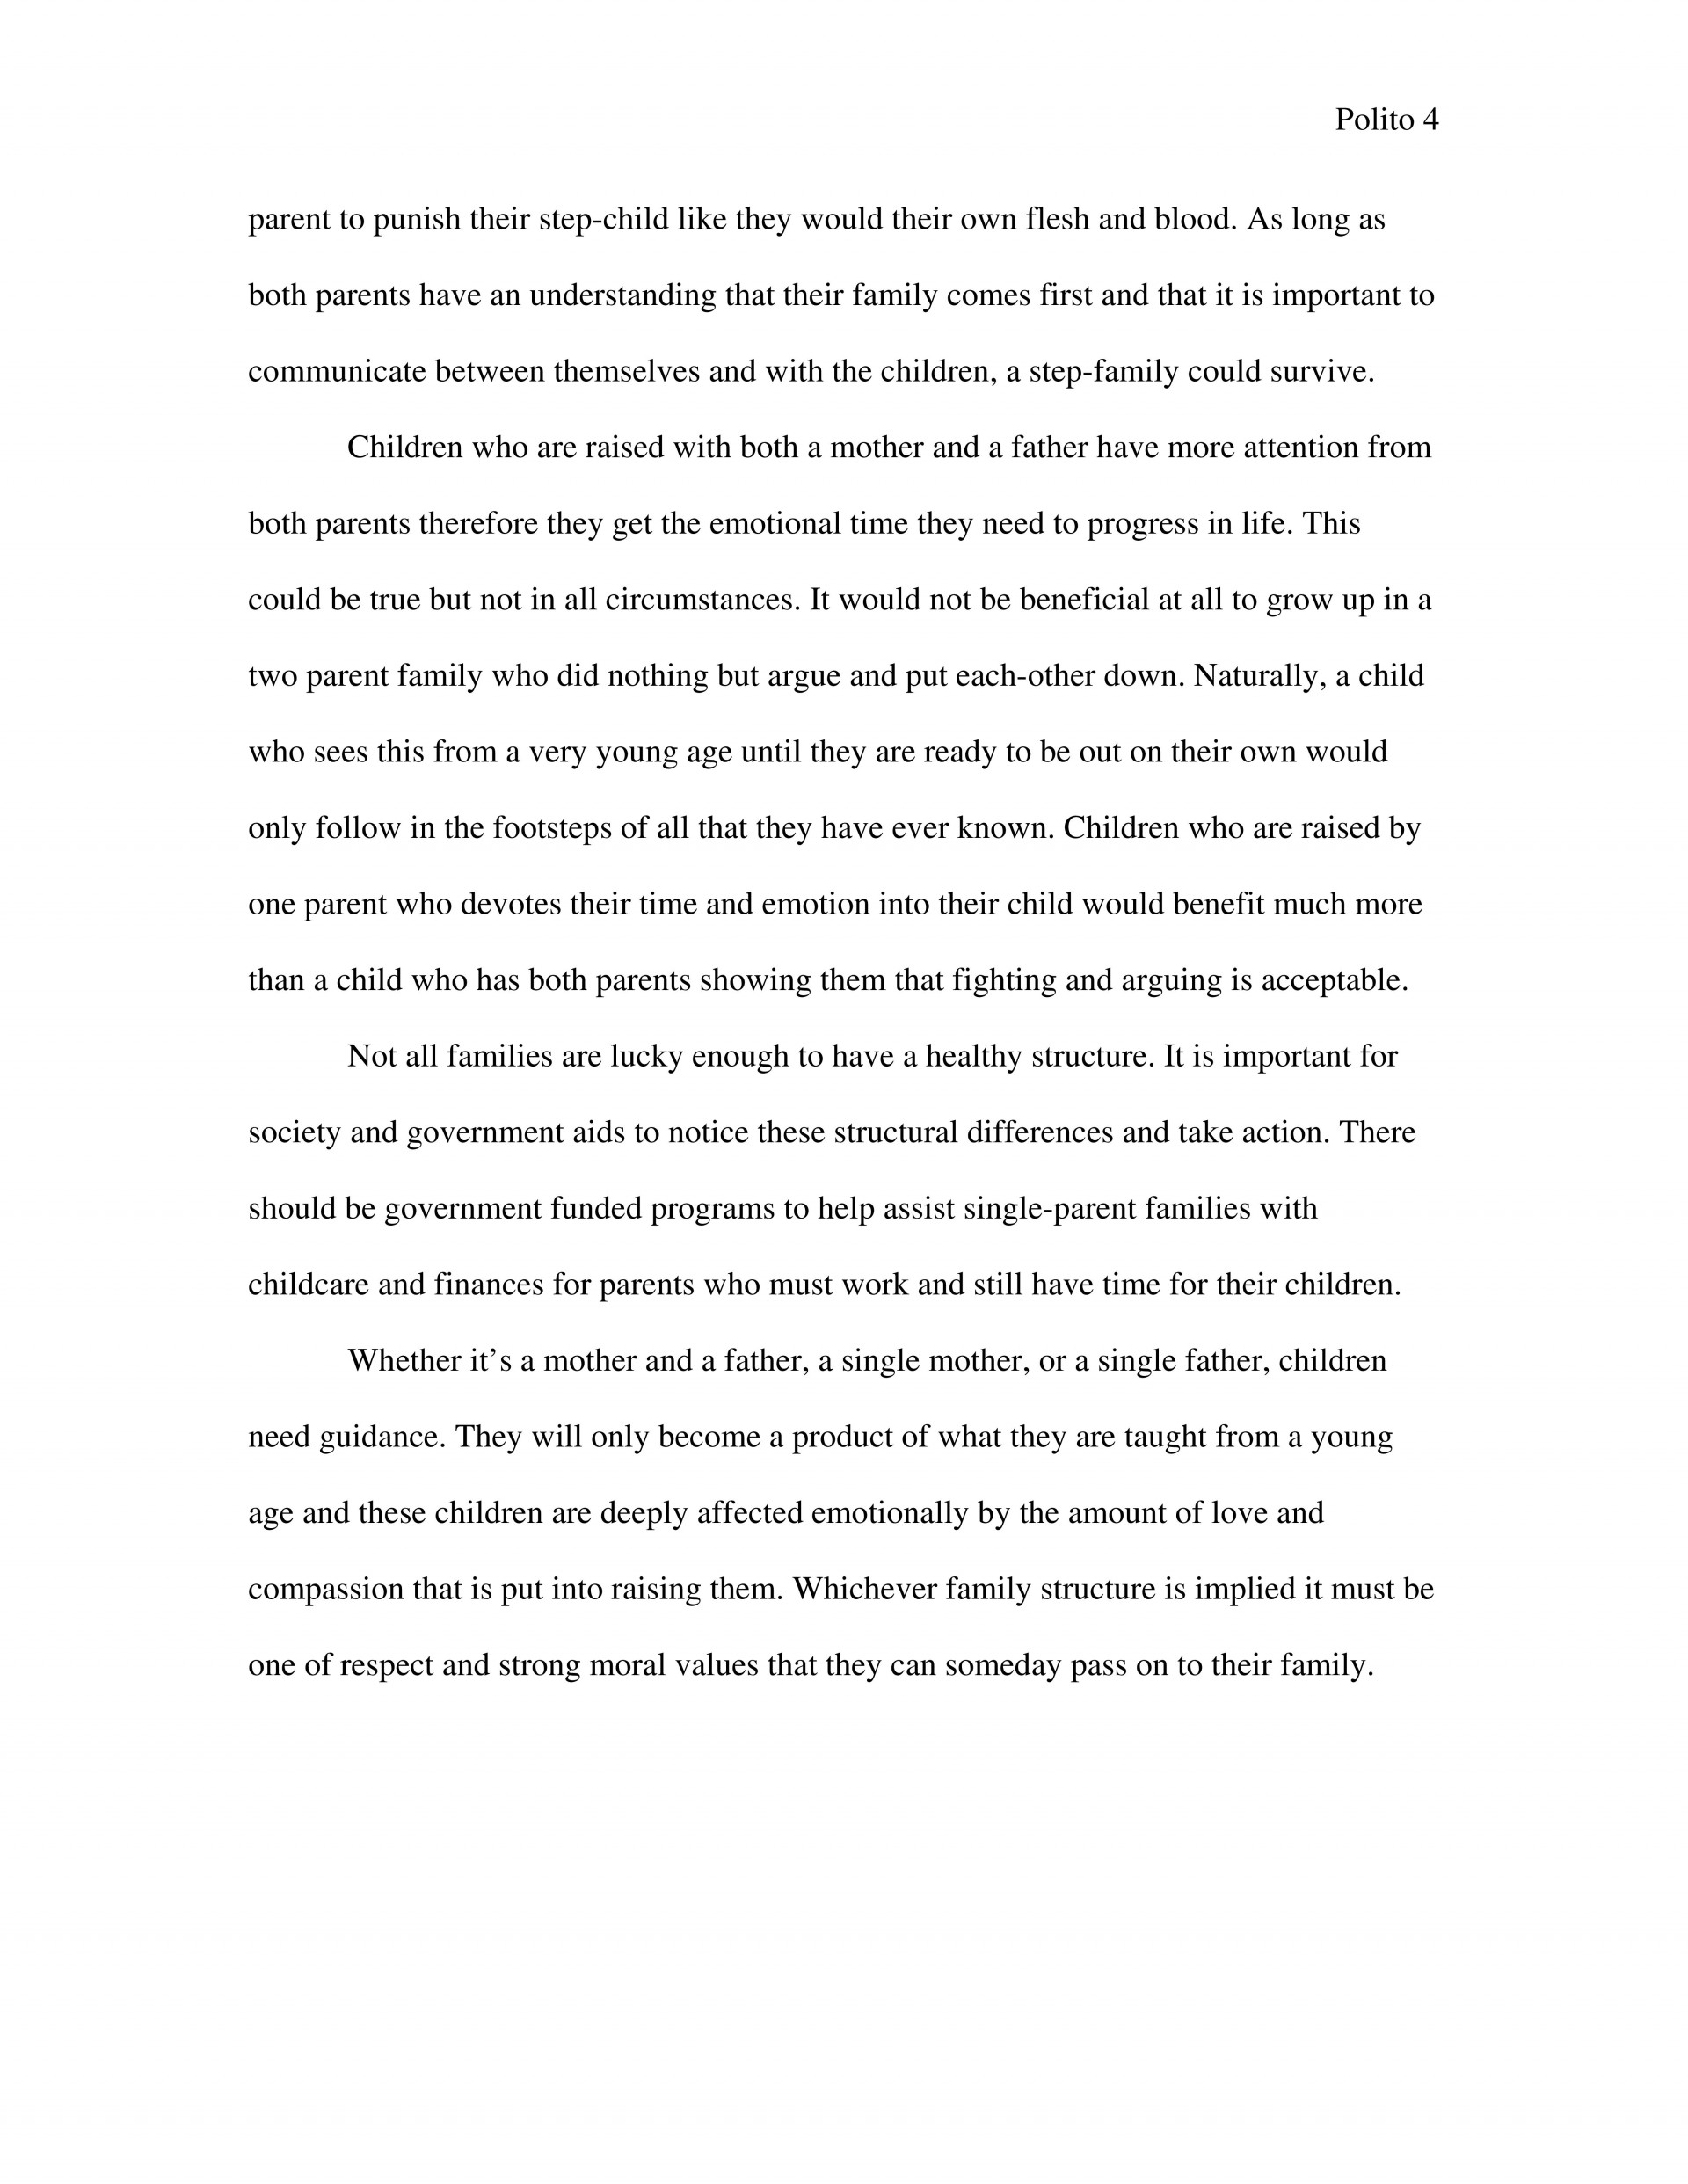 012 Essay Example Expository Sample 2 Impressive Samples Theme Examples High School For 7th Grade 1920